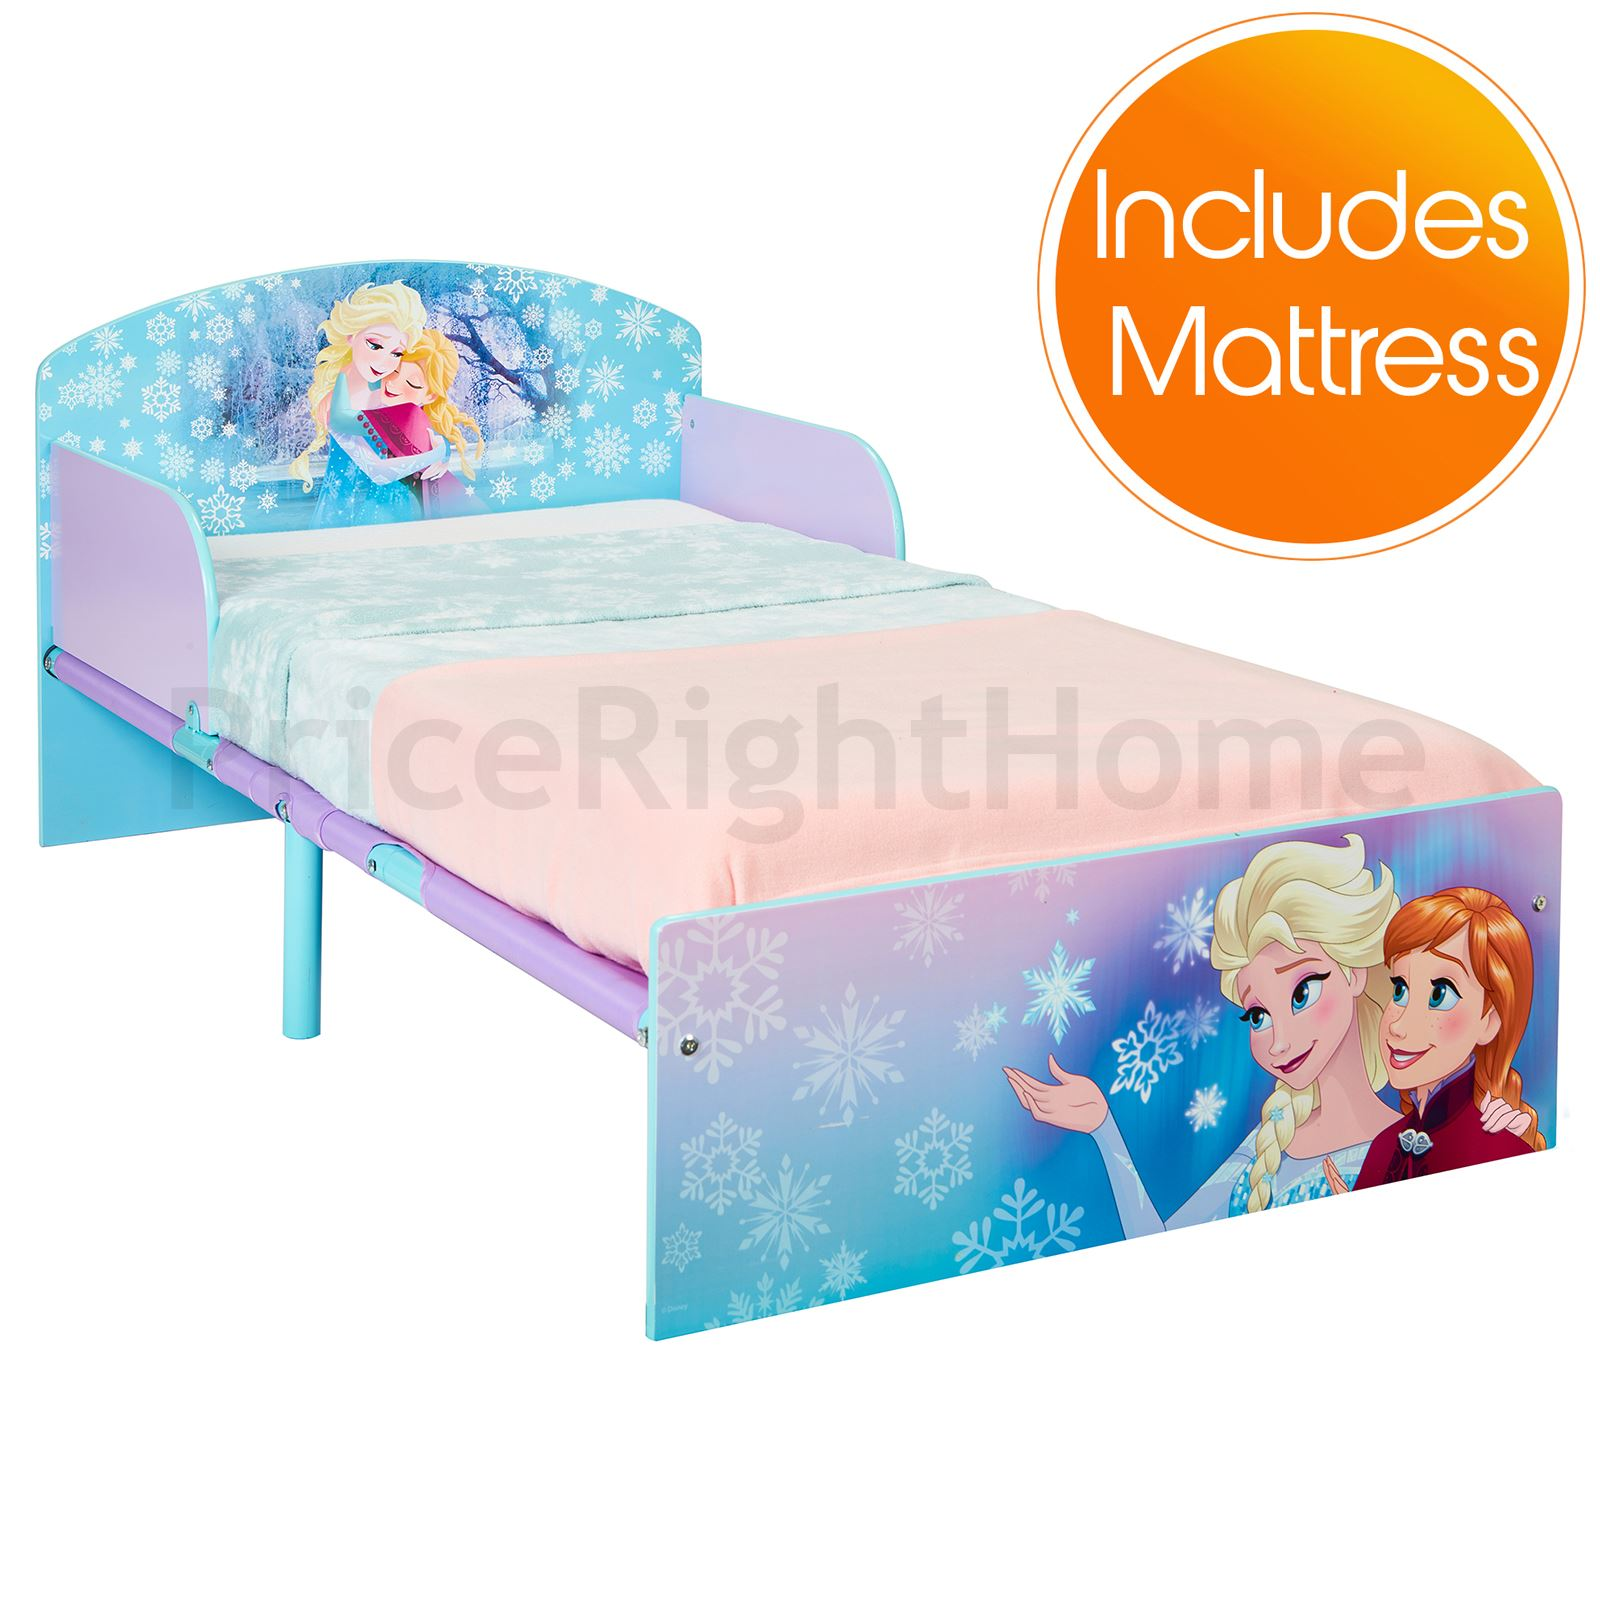 disney frozen kleinkind bett mit schutz seite wachen und 3 matratze optionen neu ebay. Black Bedroom Furniture Sets. Home Design Ideas